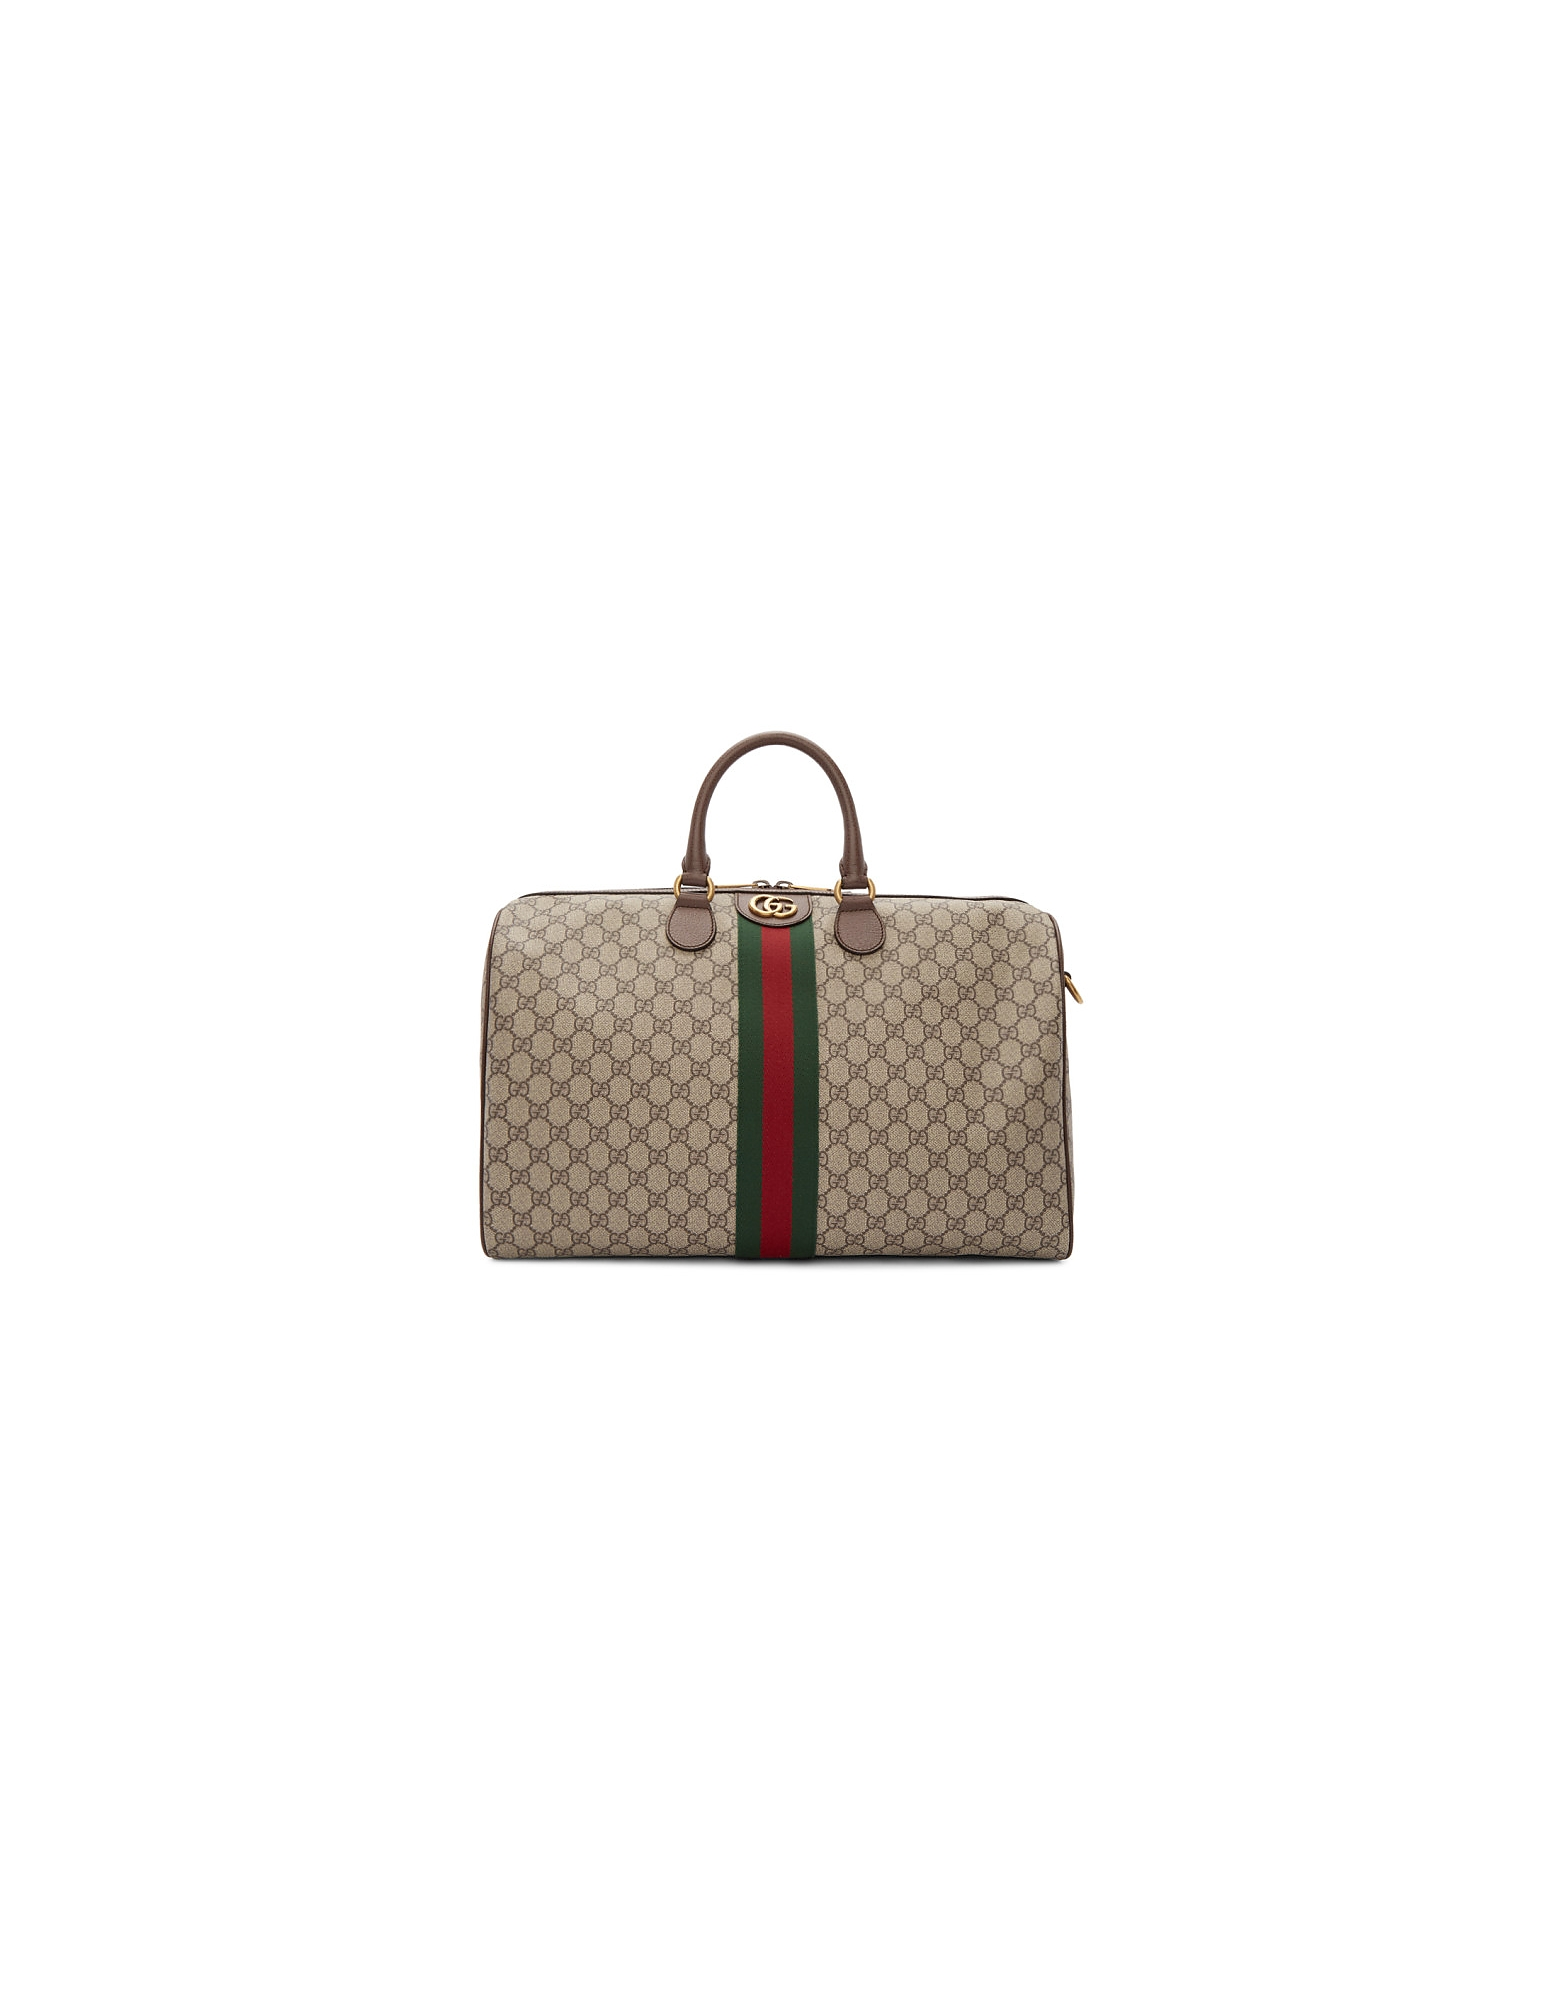 Gucci Designer Men's Bags, Beige Medium Ophidia Duffle Bag